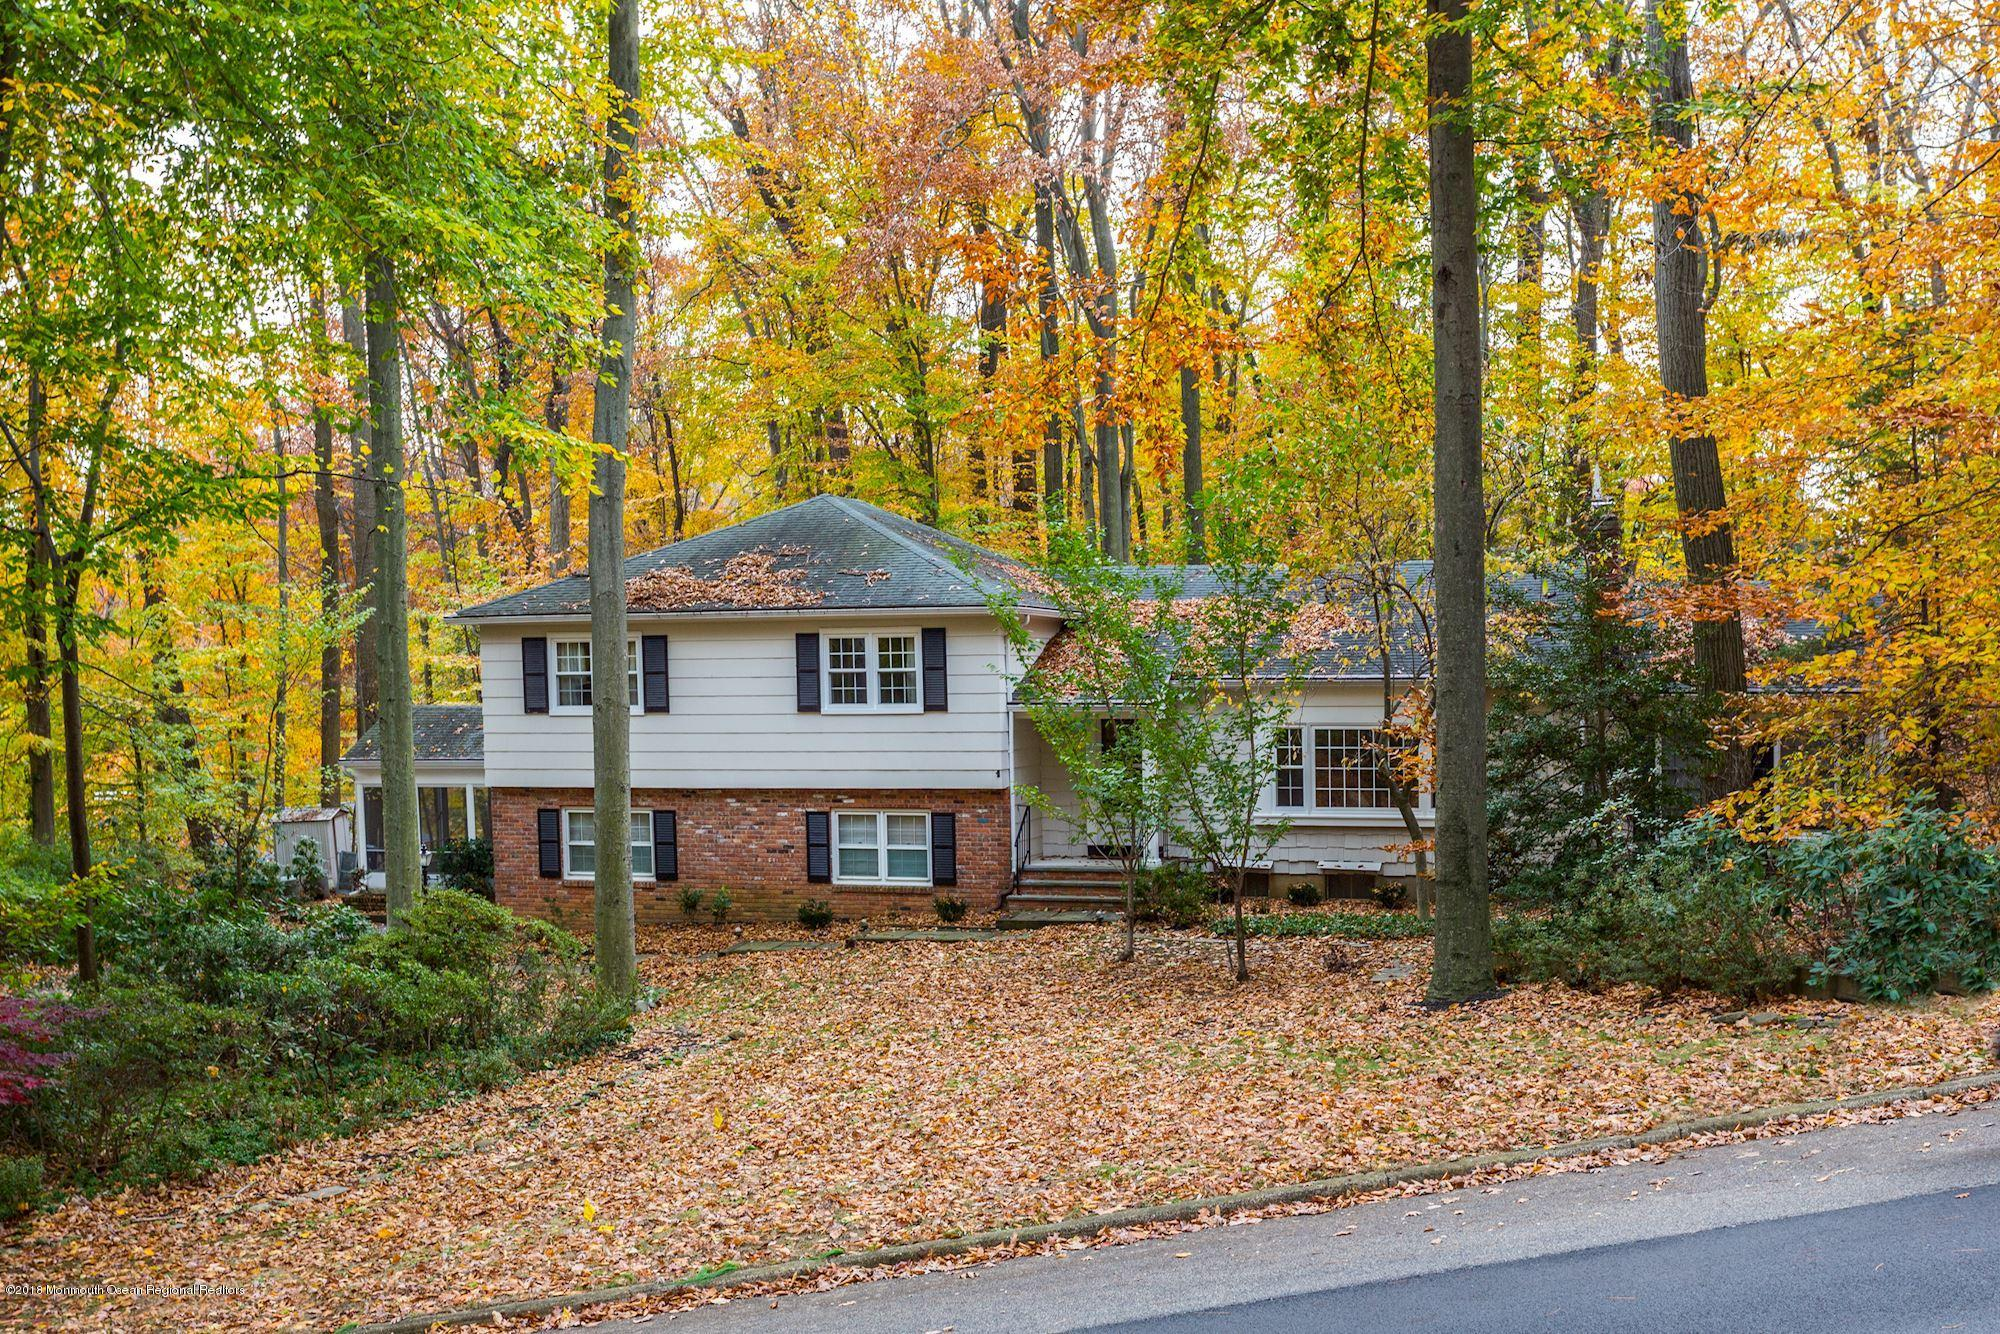 11 W Parkway Place, Holmdel, New Jersey